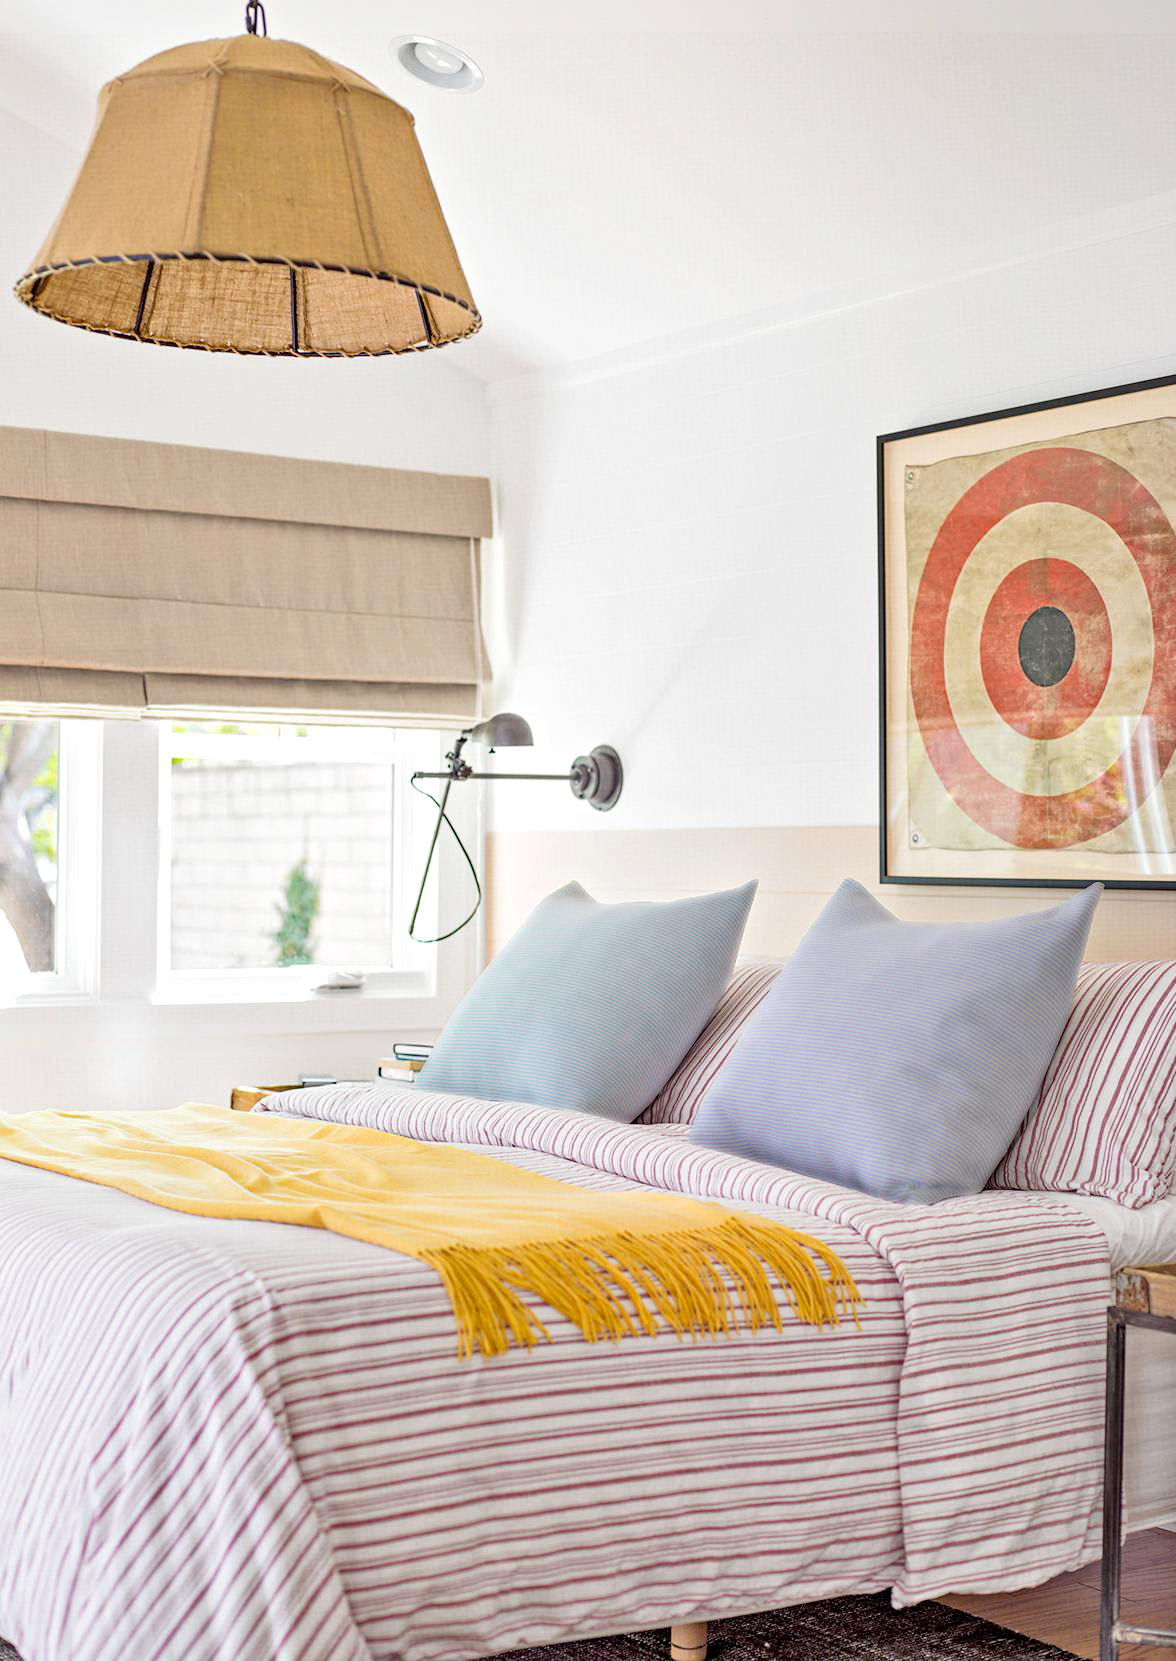 Bedroom with red target artwork above bed